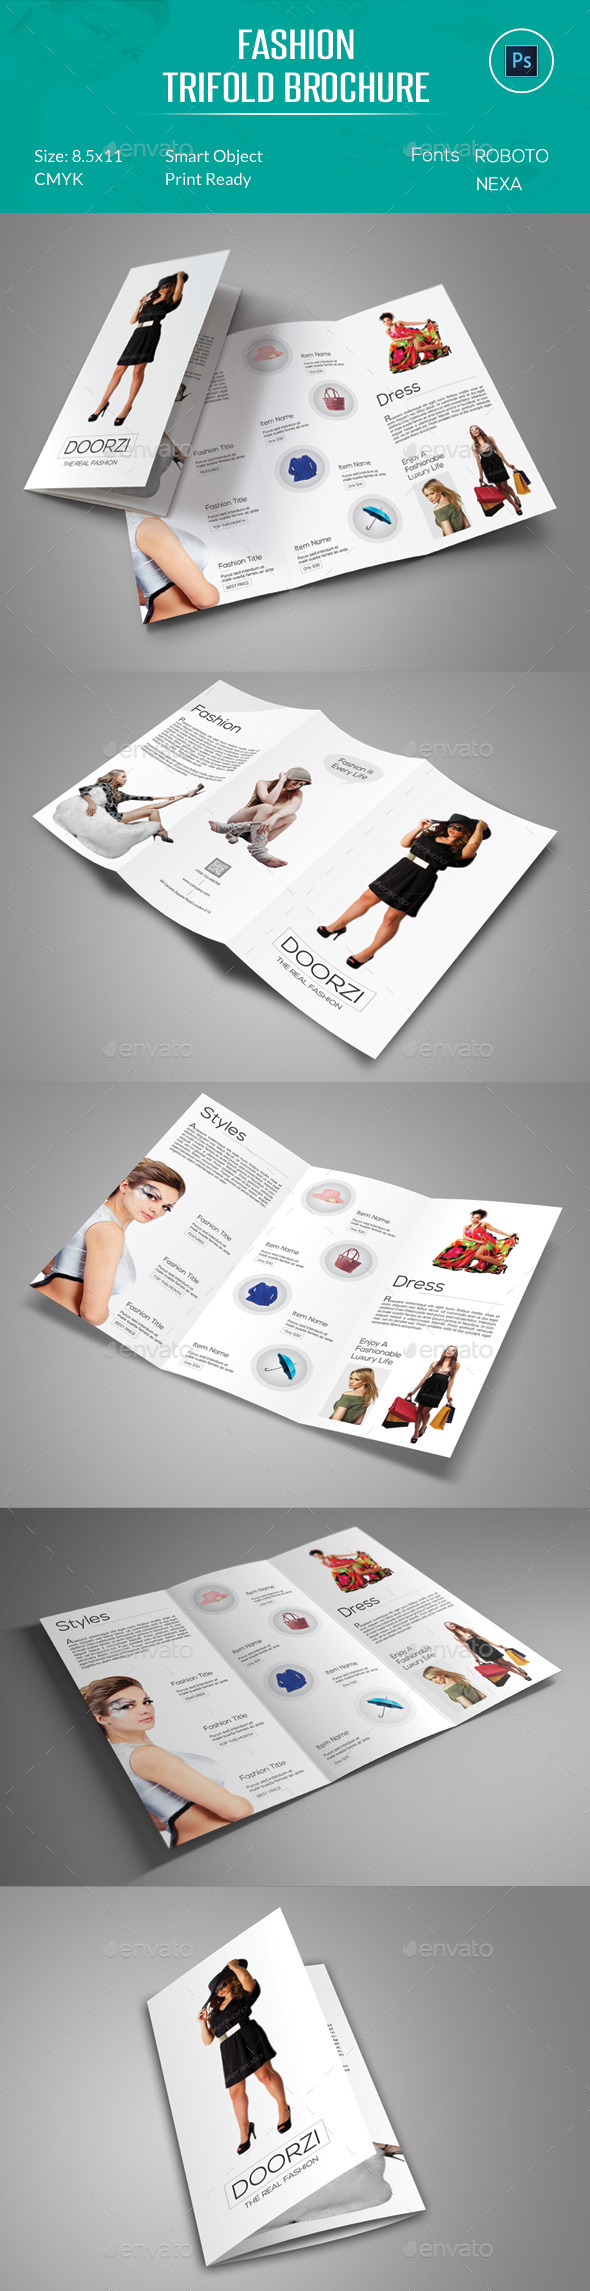 Fashion Trifold Brochure - Catalogs Brochures